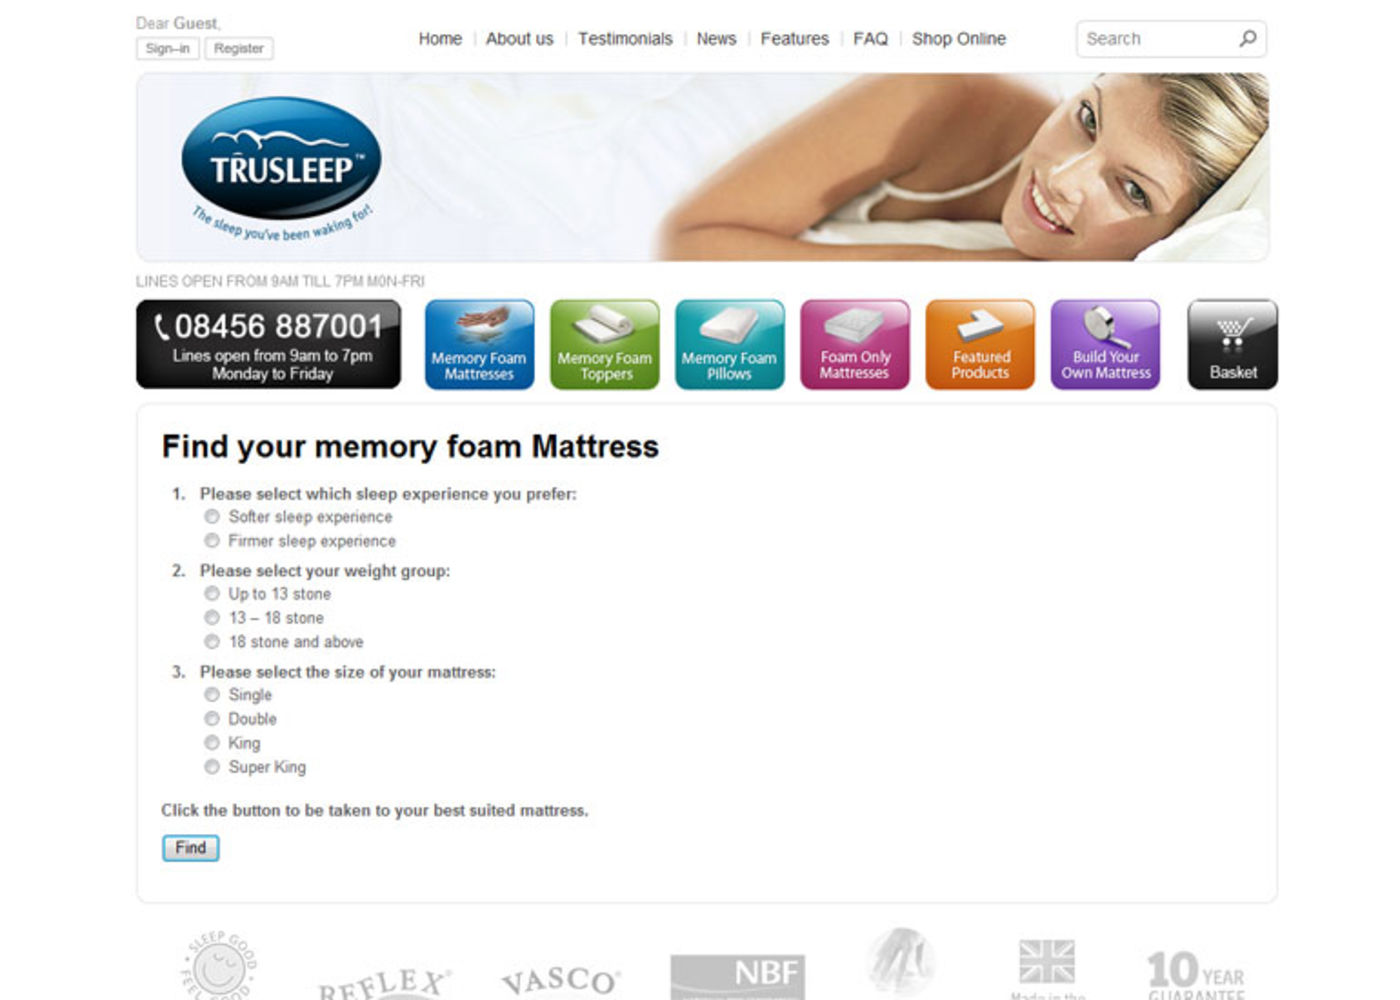 TruSleep Find your memory foam Mattress - TruSleep